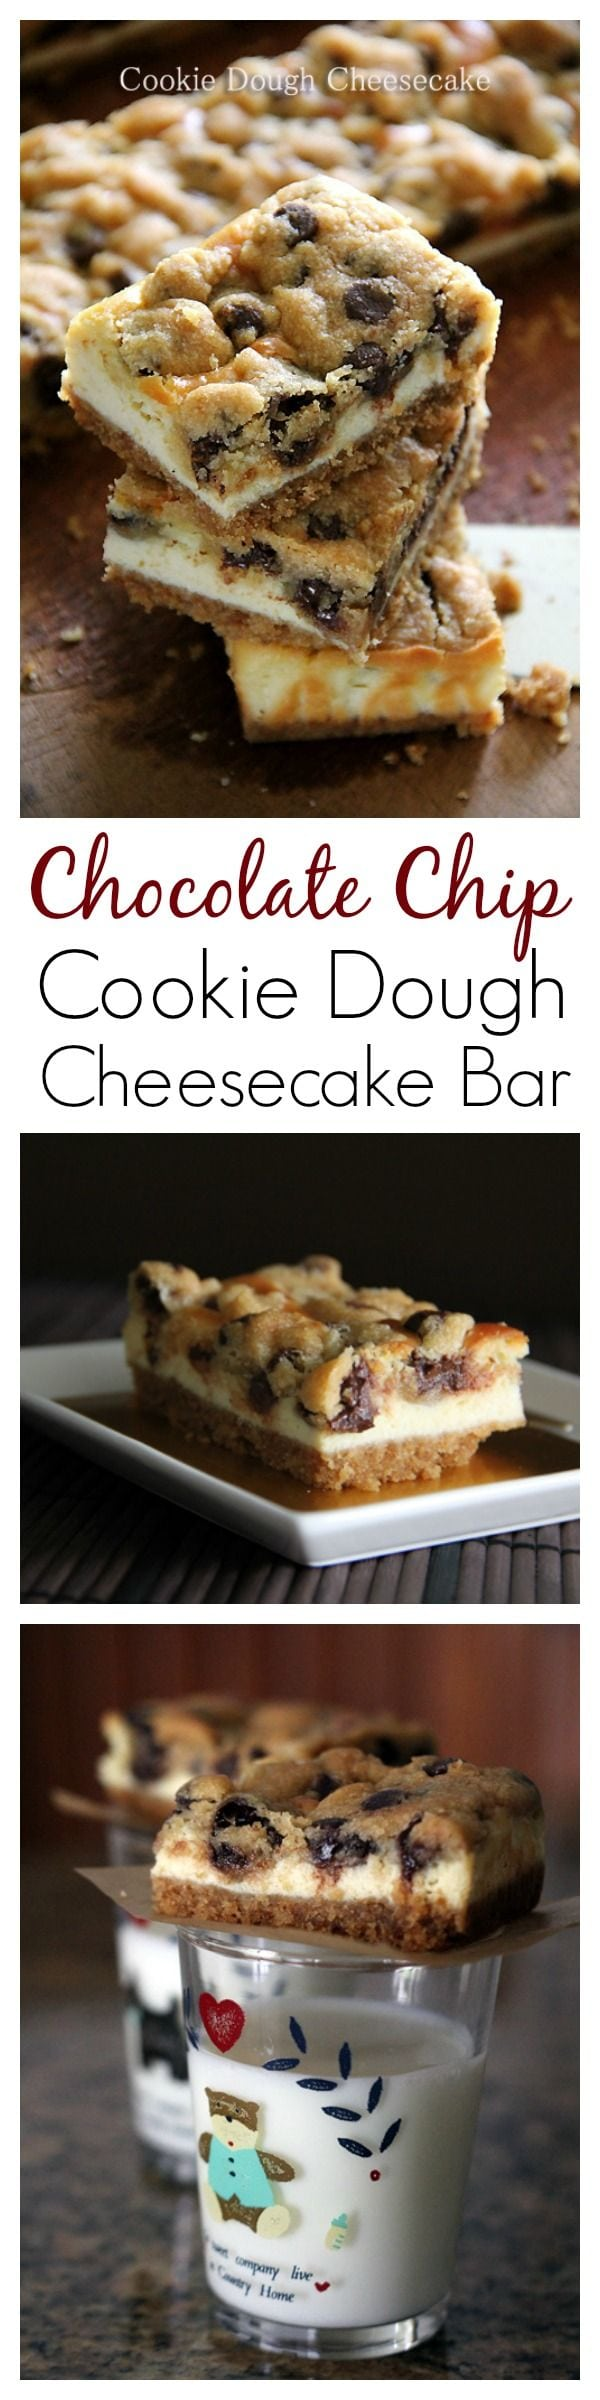 Chocolate Chip Cookie Dough Cheesecake Bar - the BEST cheesecake bar and dessert EVER with chocolate chip, cookie dough and cheesecake!! | rasamalaysia.com